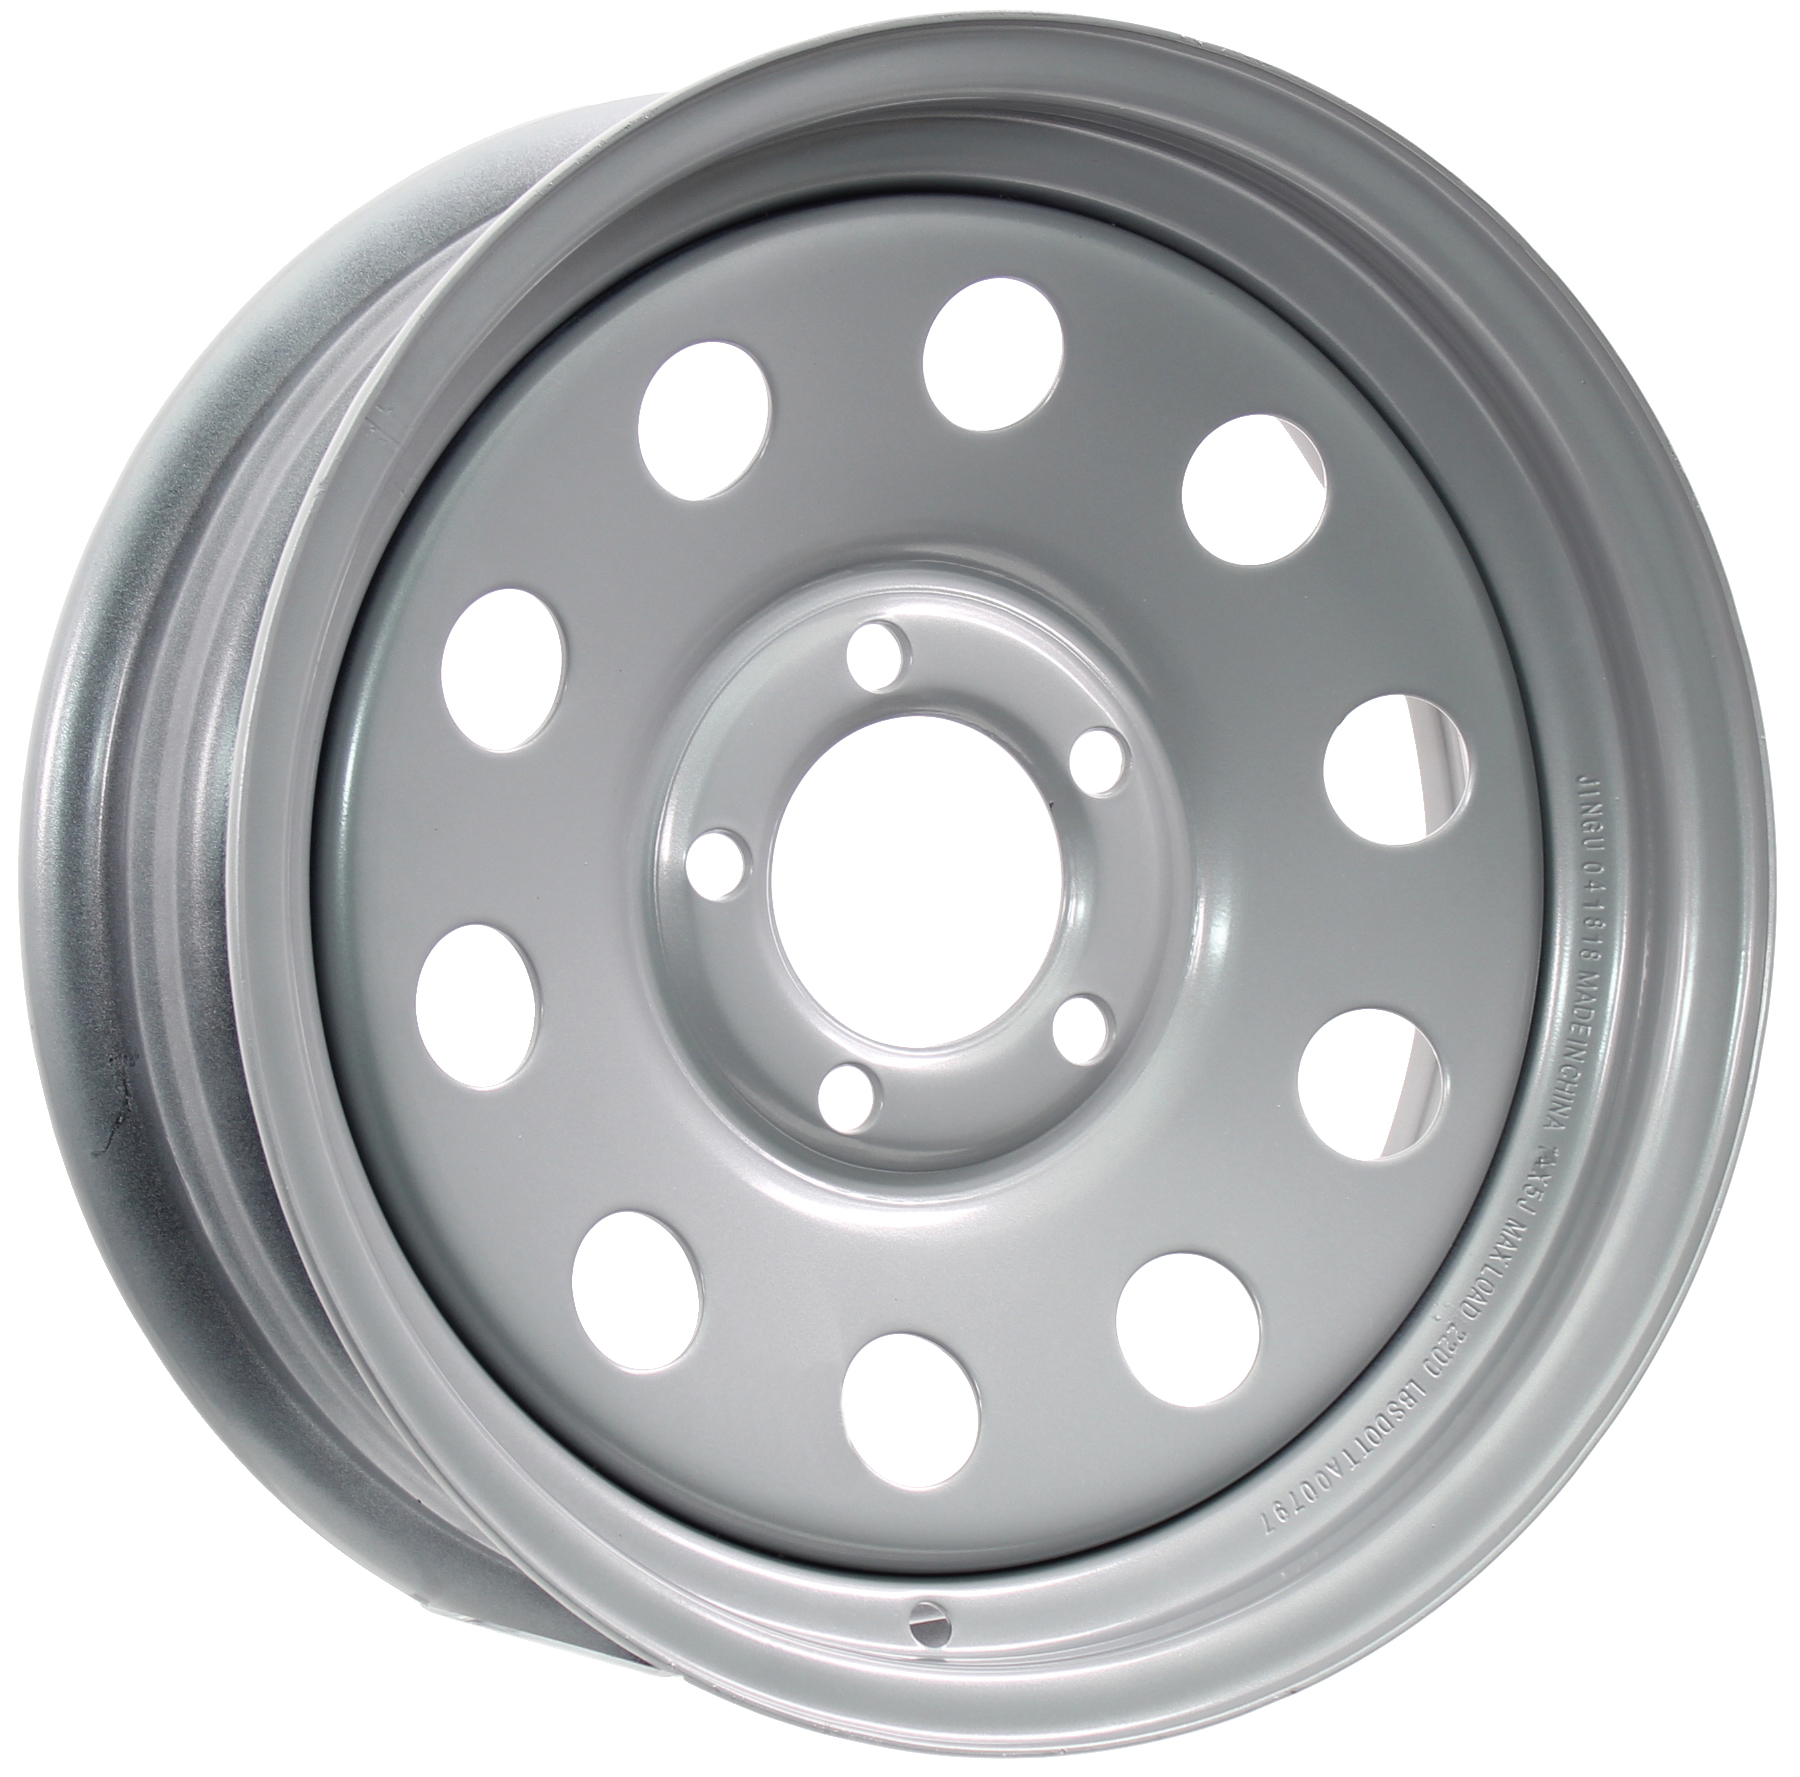 14x5.5 5-4.5 Silver Mod Steel Trailer Wheel Image